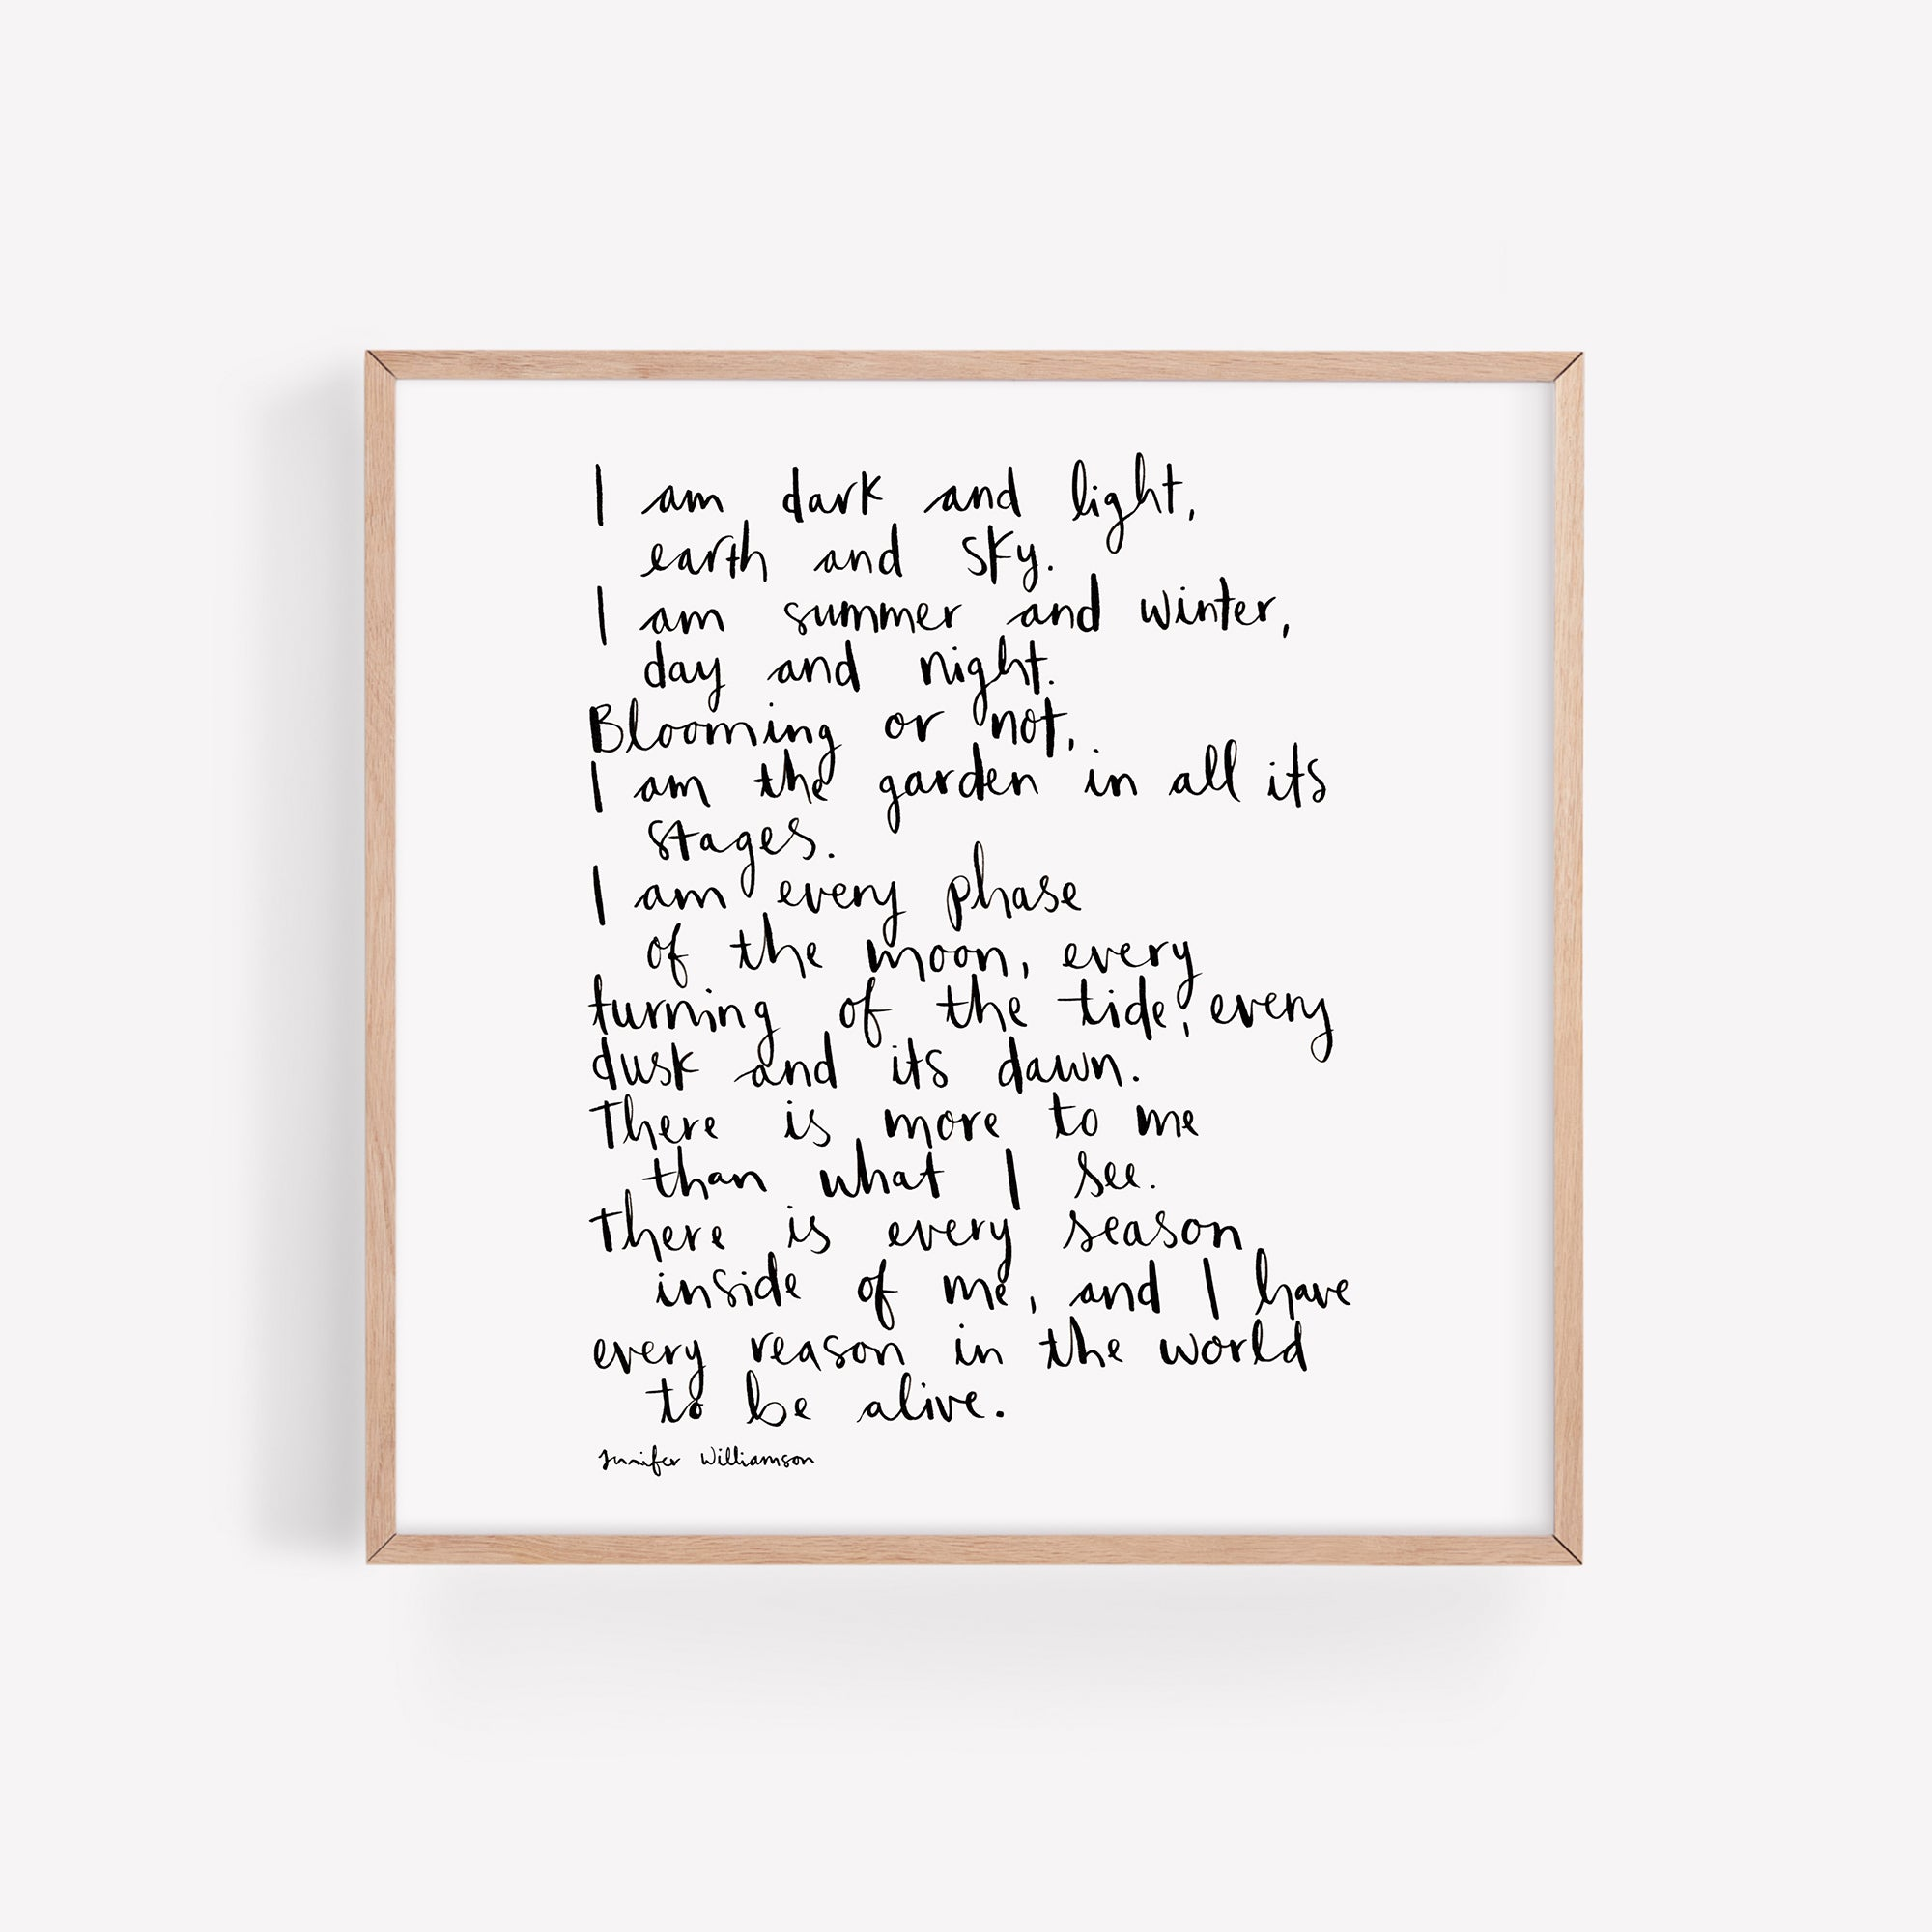 Every Reason In The World To Be Alive Hand Lettered Affirmation Print